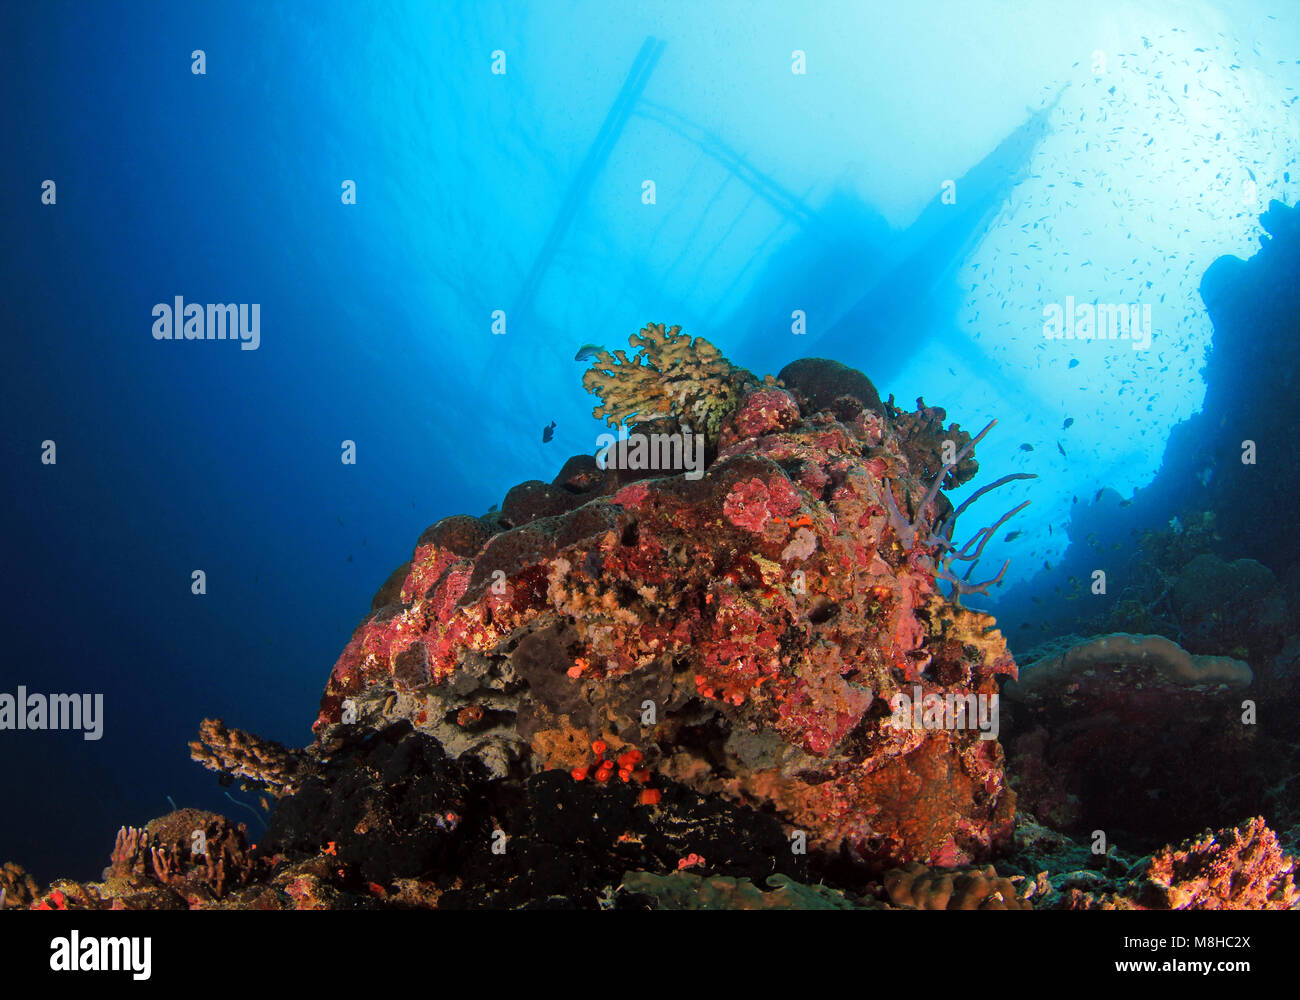 Coral Reef and Bangka Boat from Below. Pescador Island, Moalboal, Philippines - Stock Image